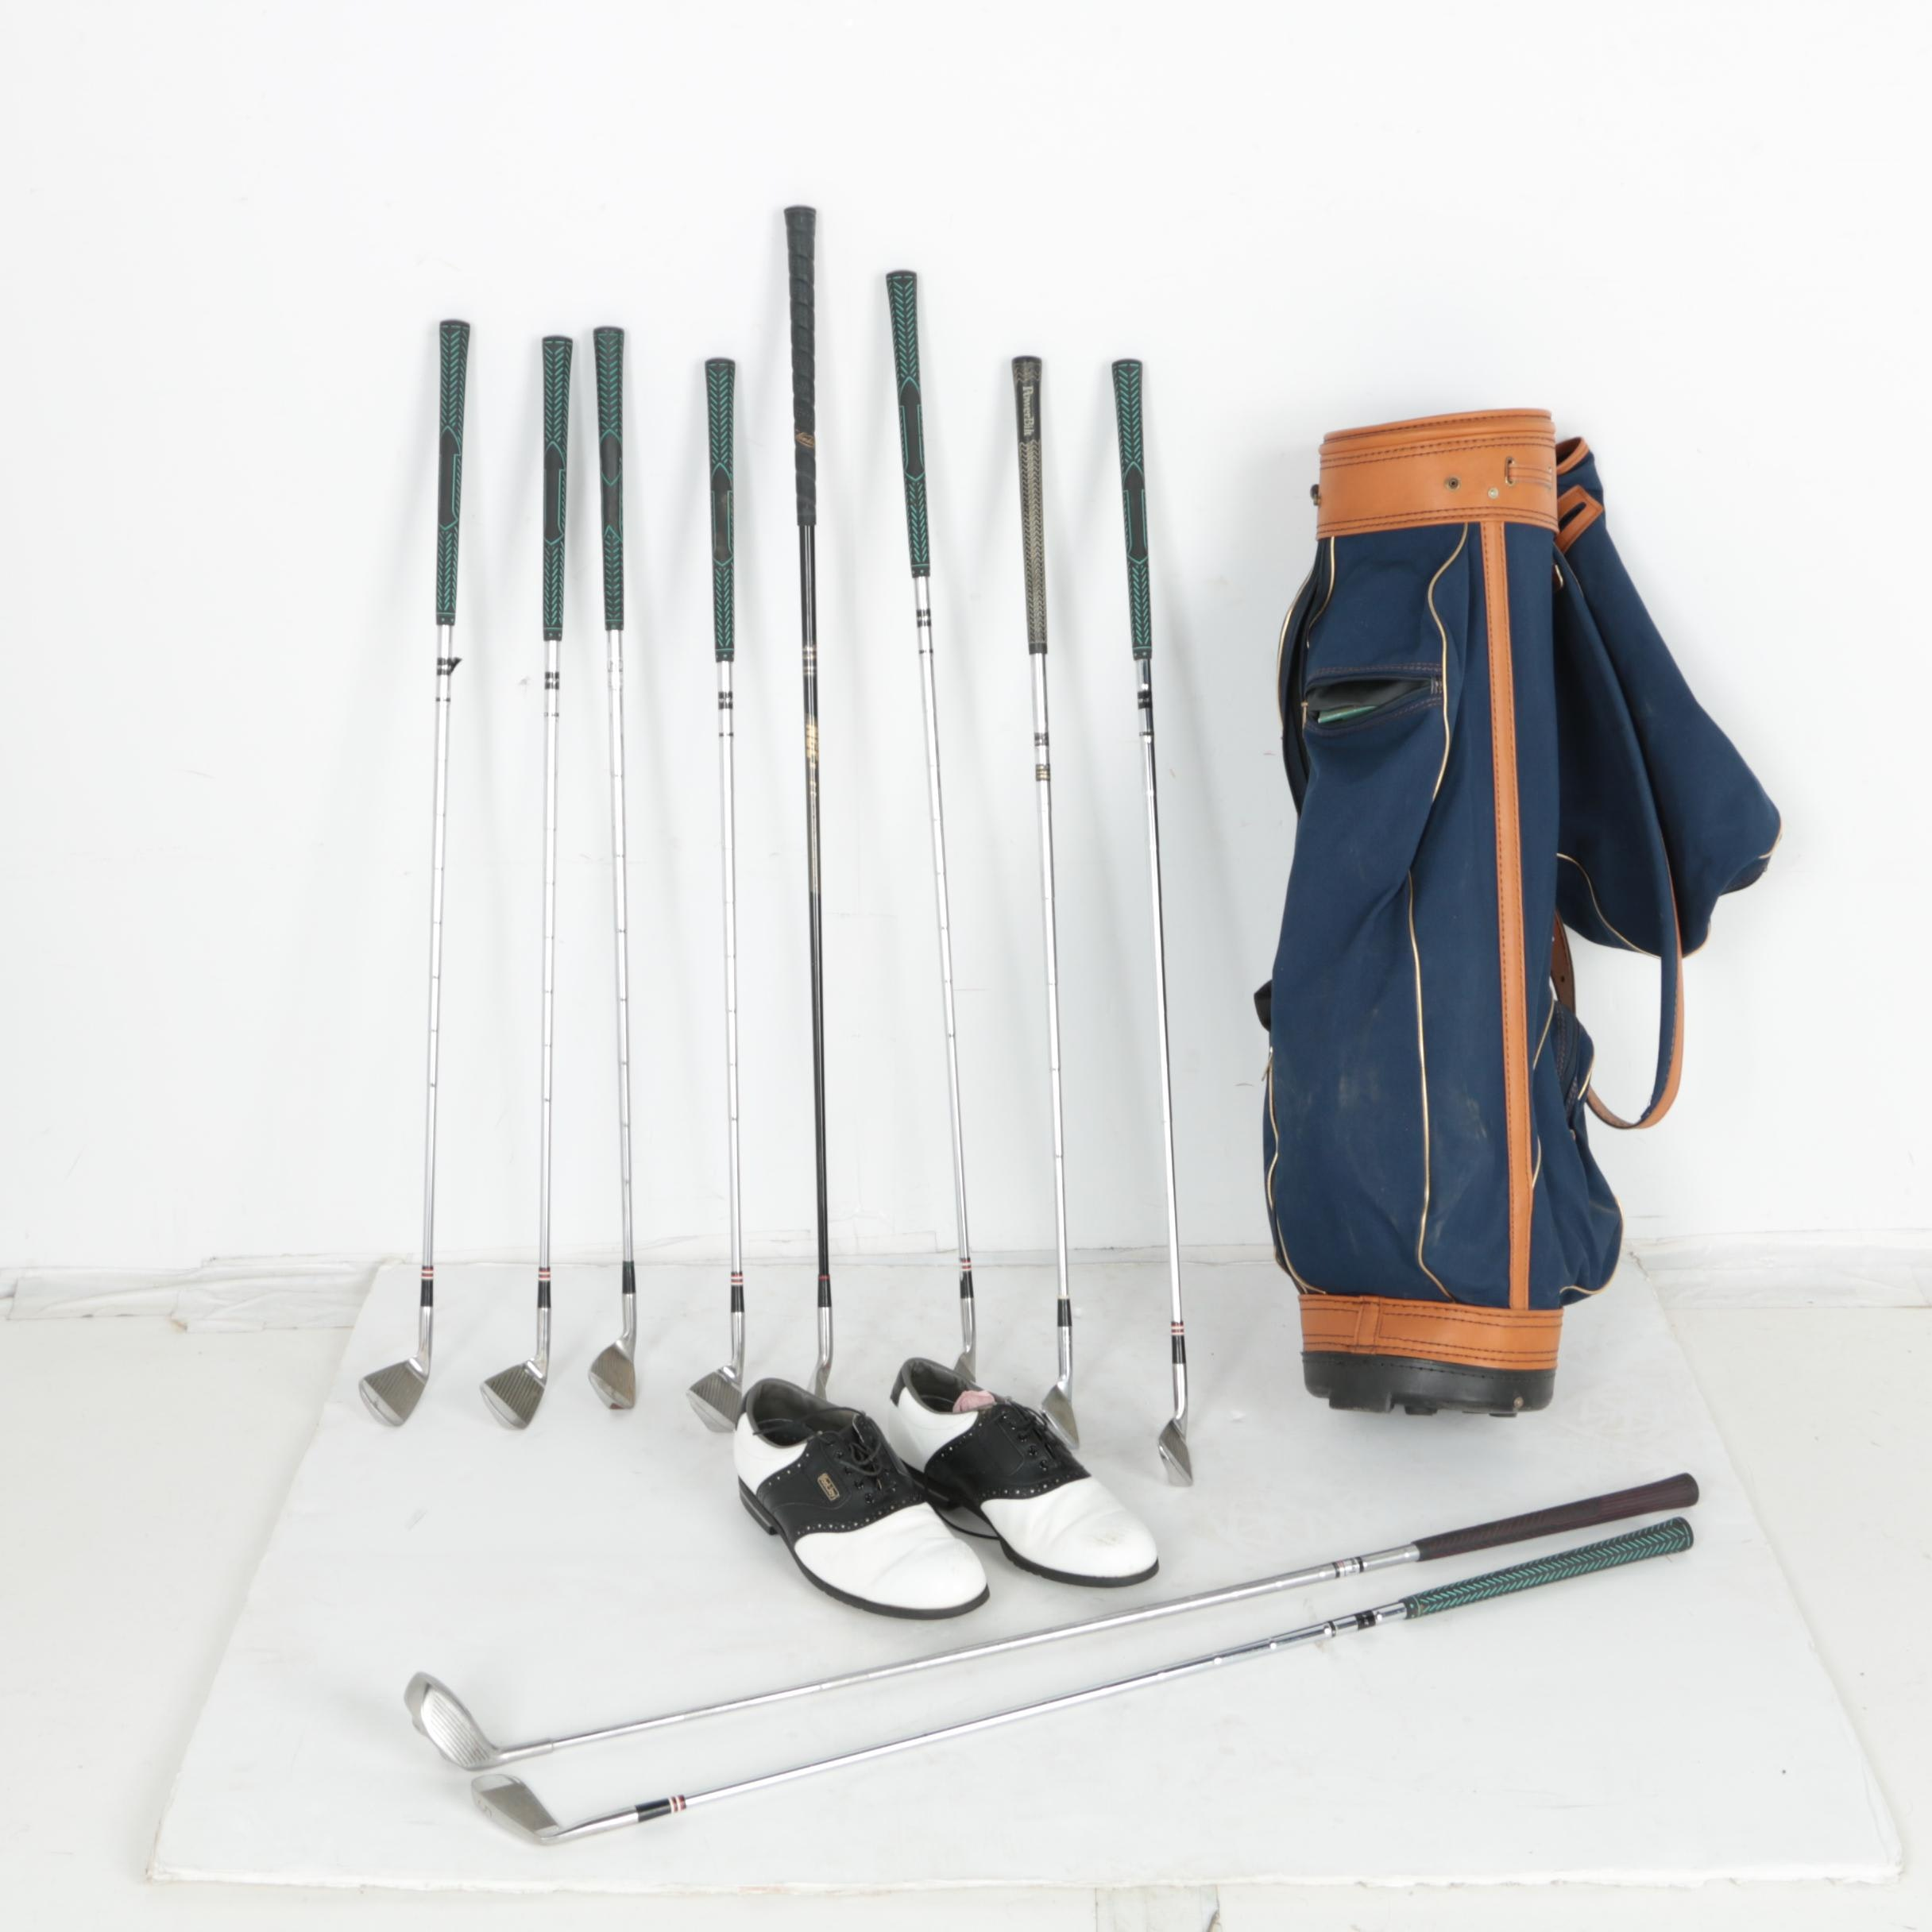 Assortment of Golf Clubs with Bag and Shoes